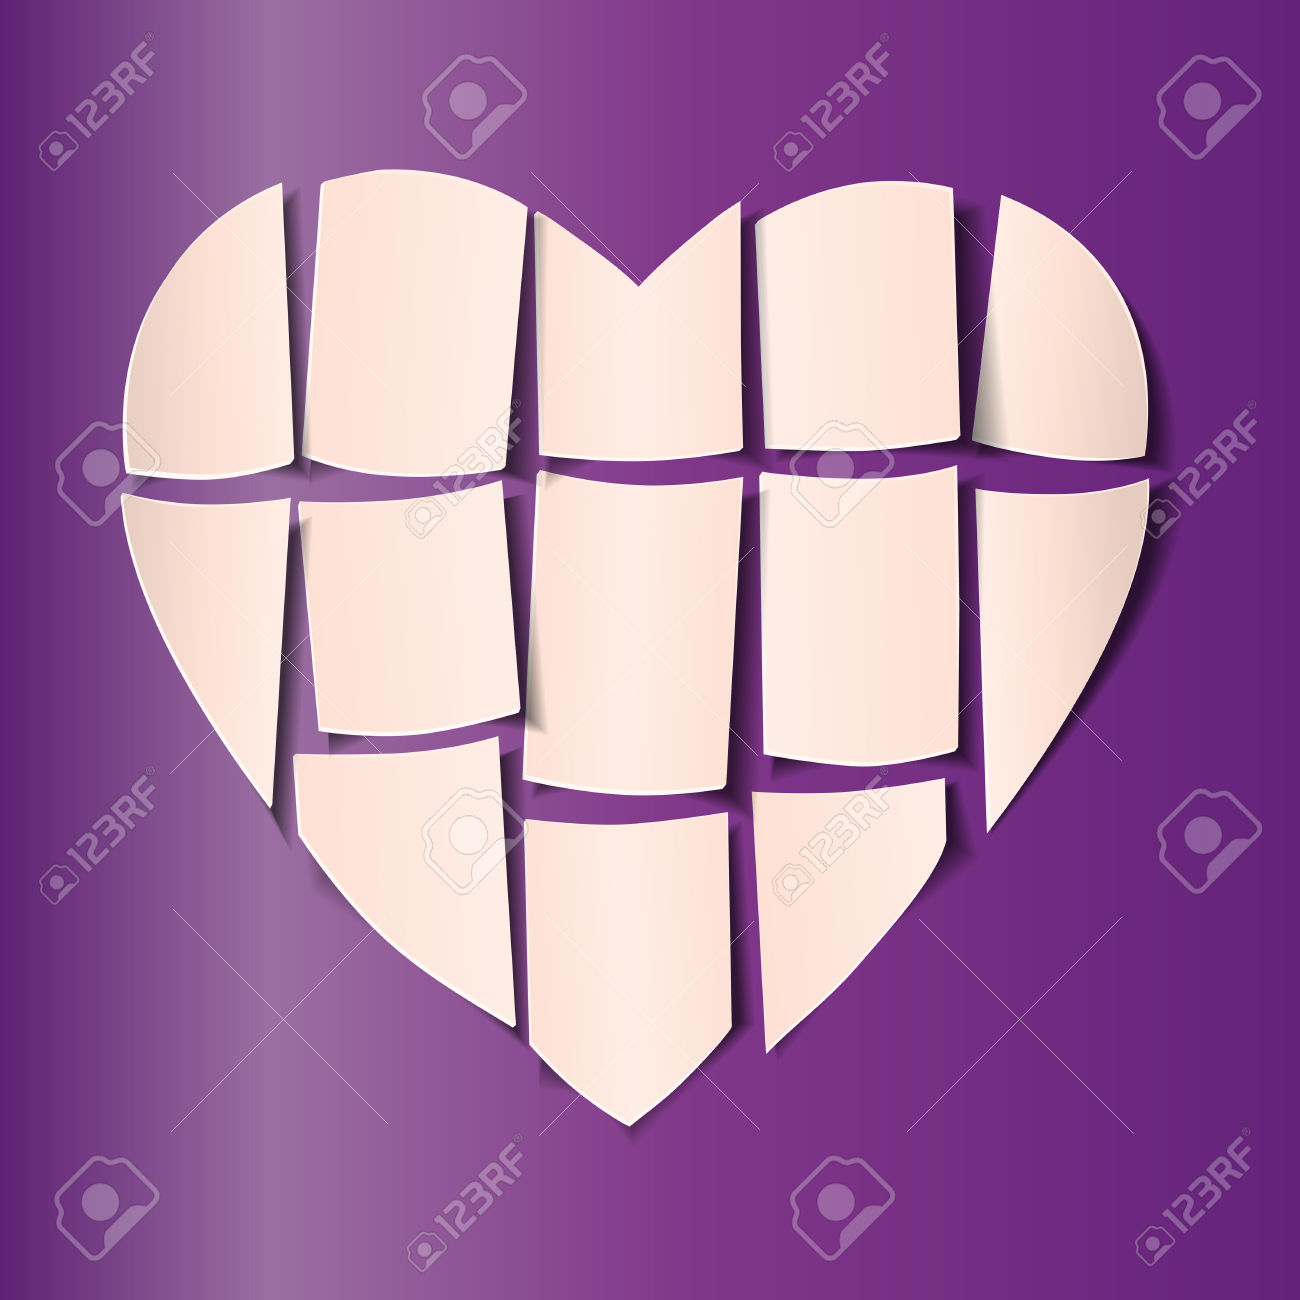 Symbol Of Love And Valentine's Day. Bright Beige Cut Into Pieces.